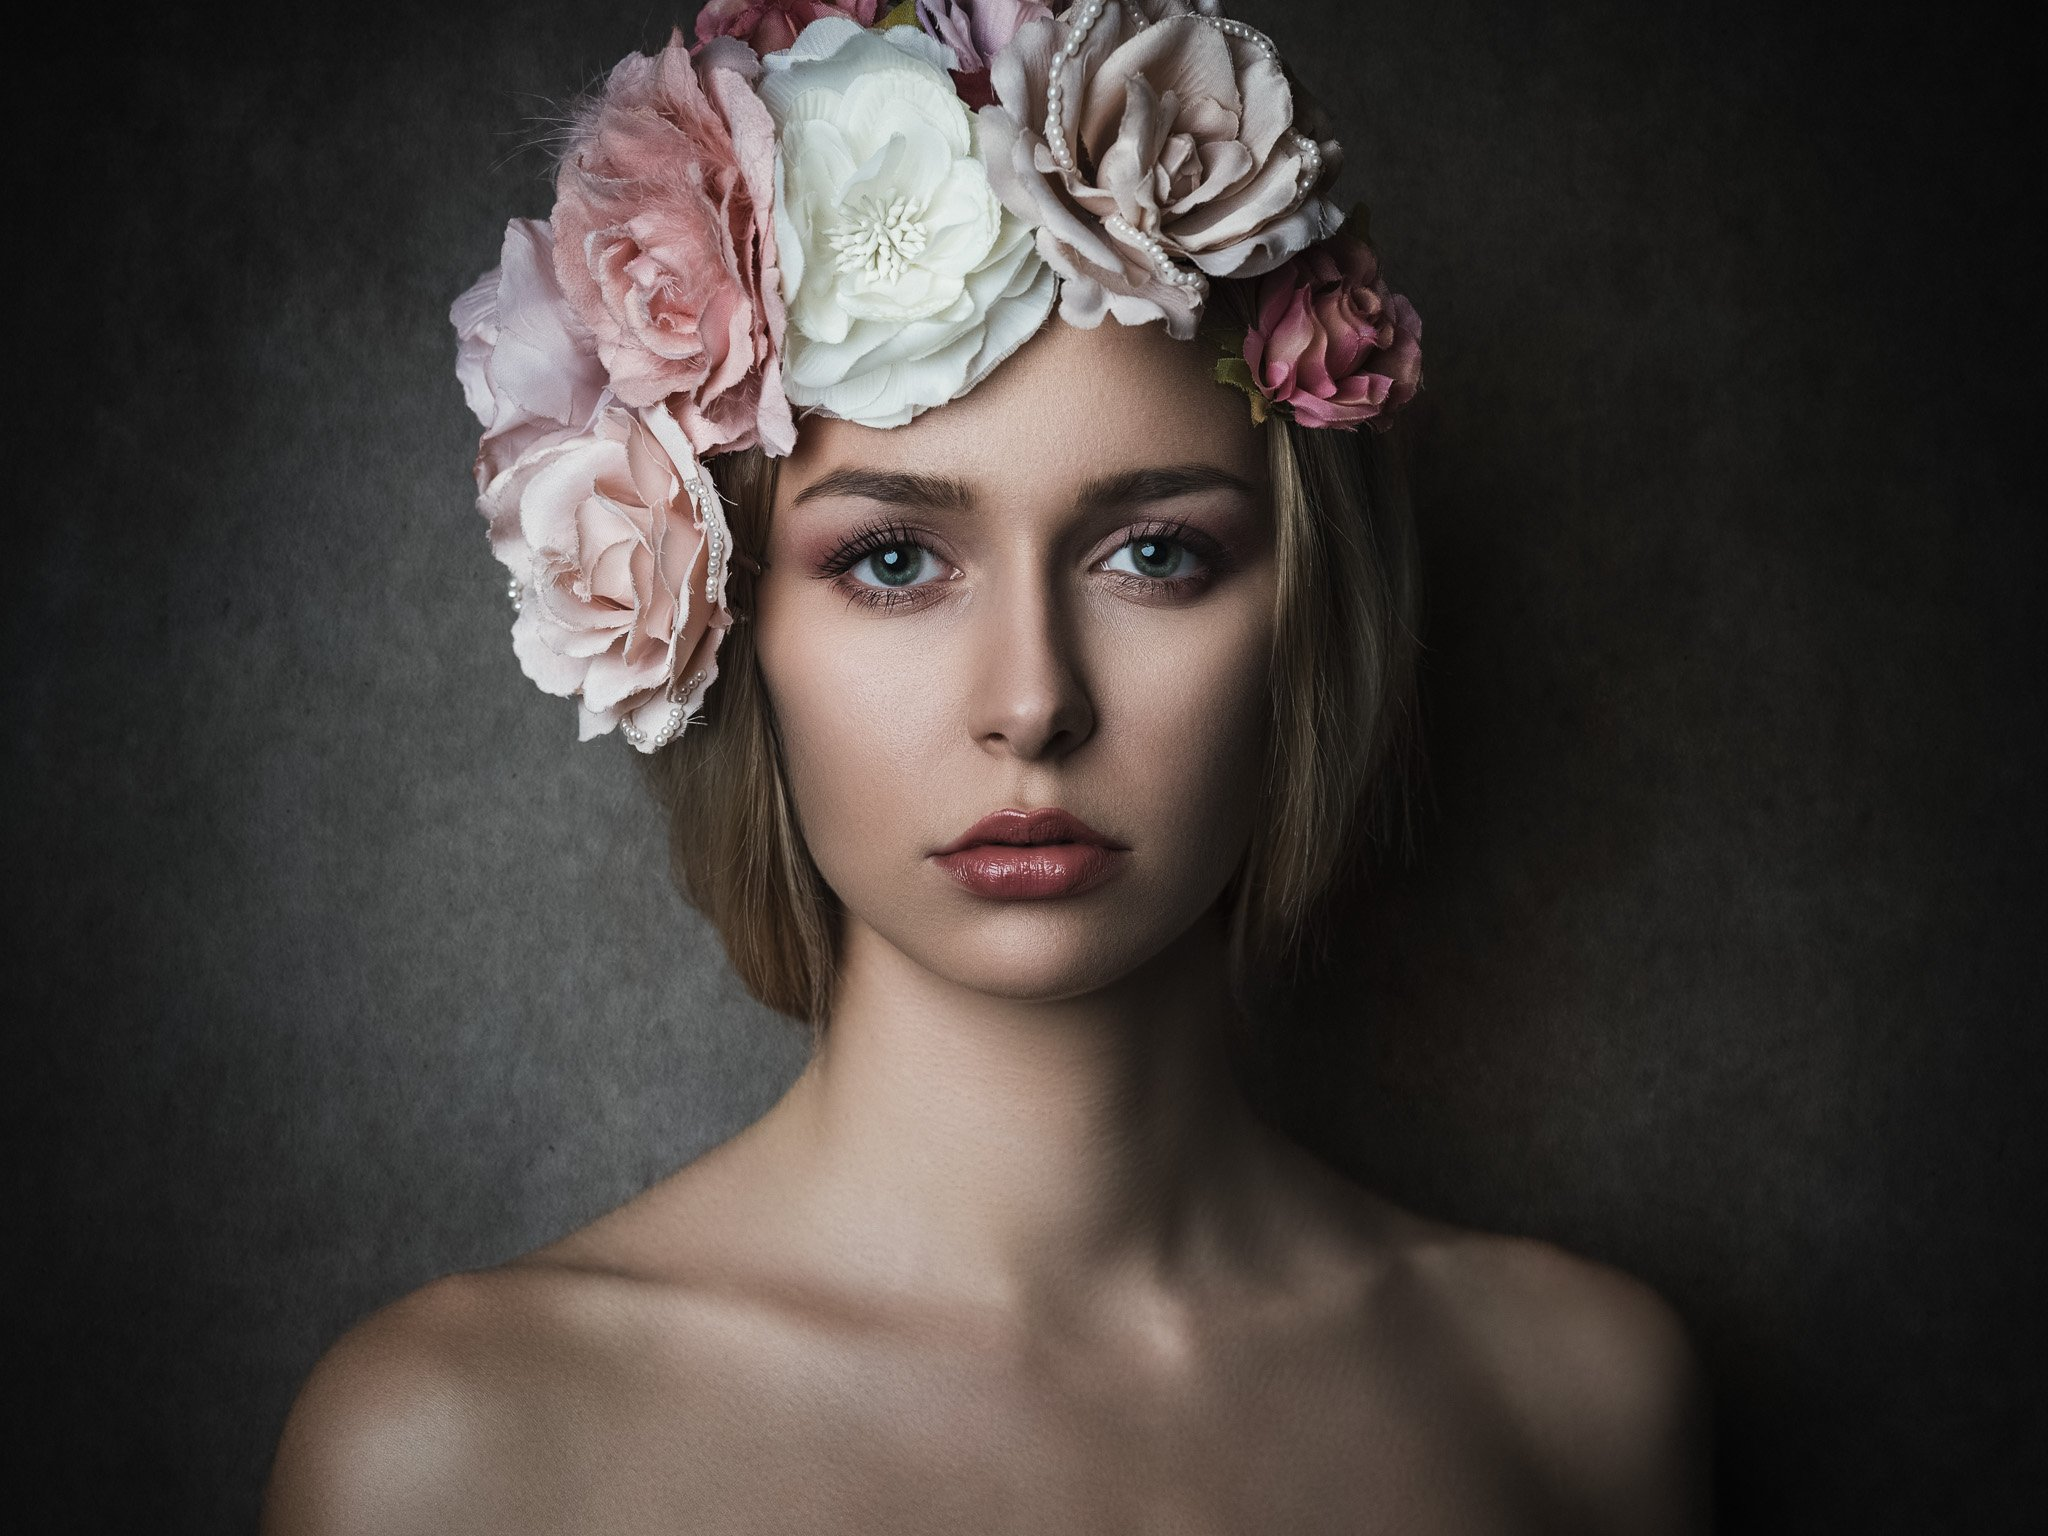 portrait, hairflowers, Michael Schnabl